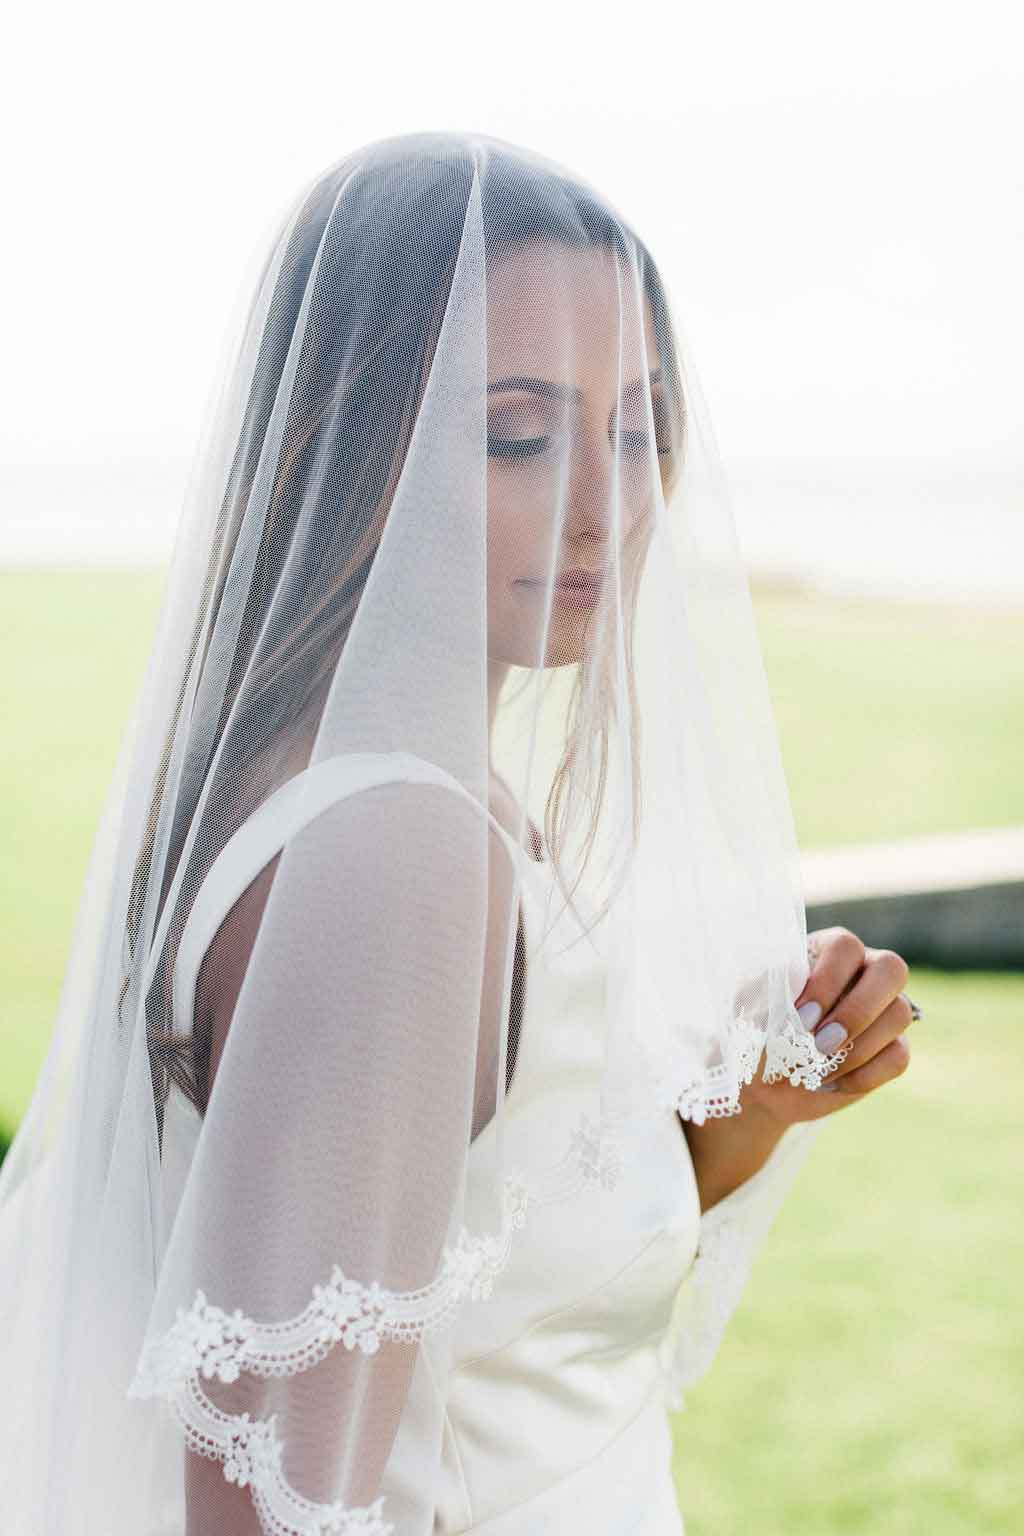 Bride wearing blusher style Lily drop veil by Mauve et Blush featuring Venetian lace trim outside at her wedding